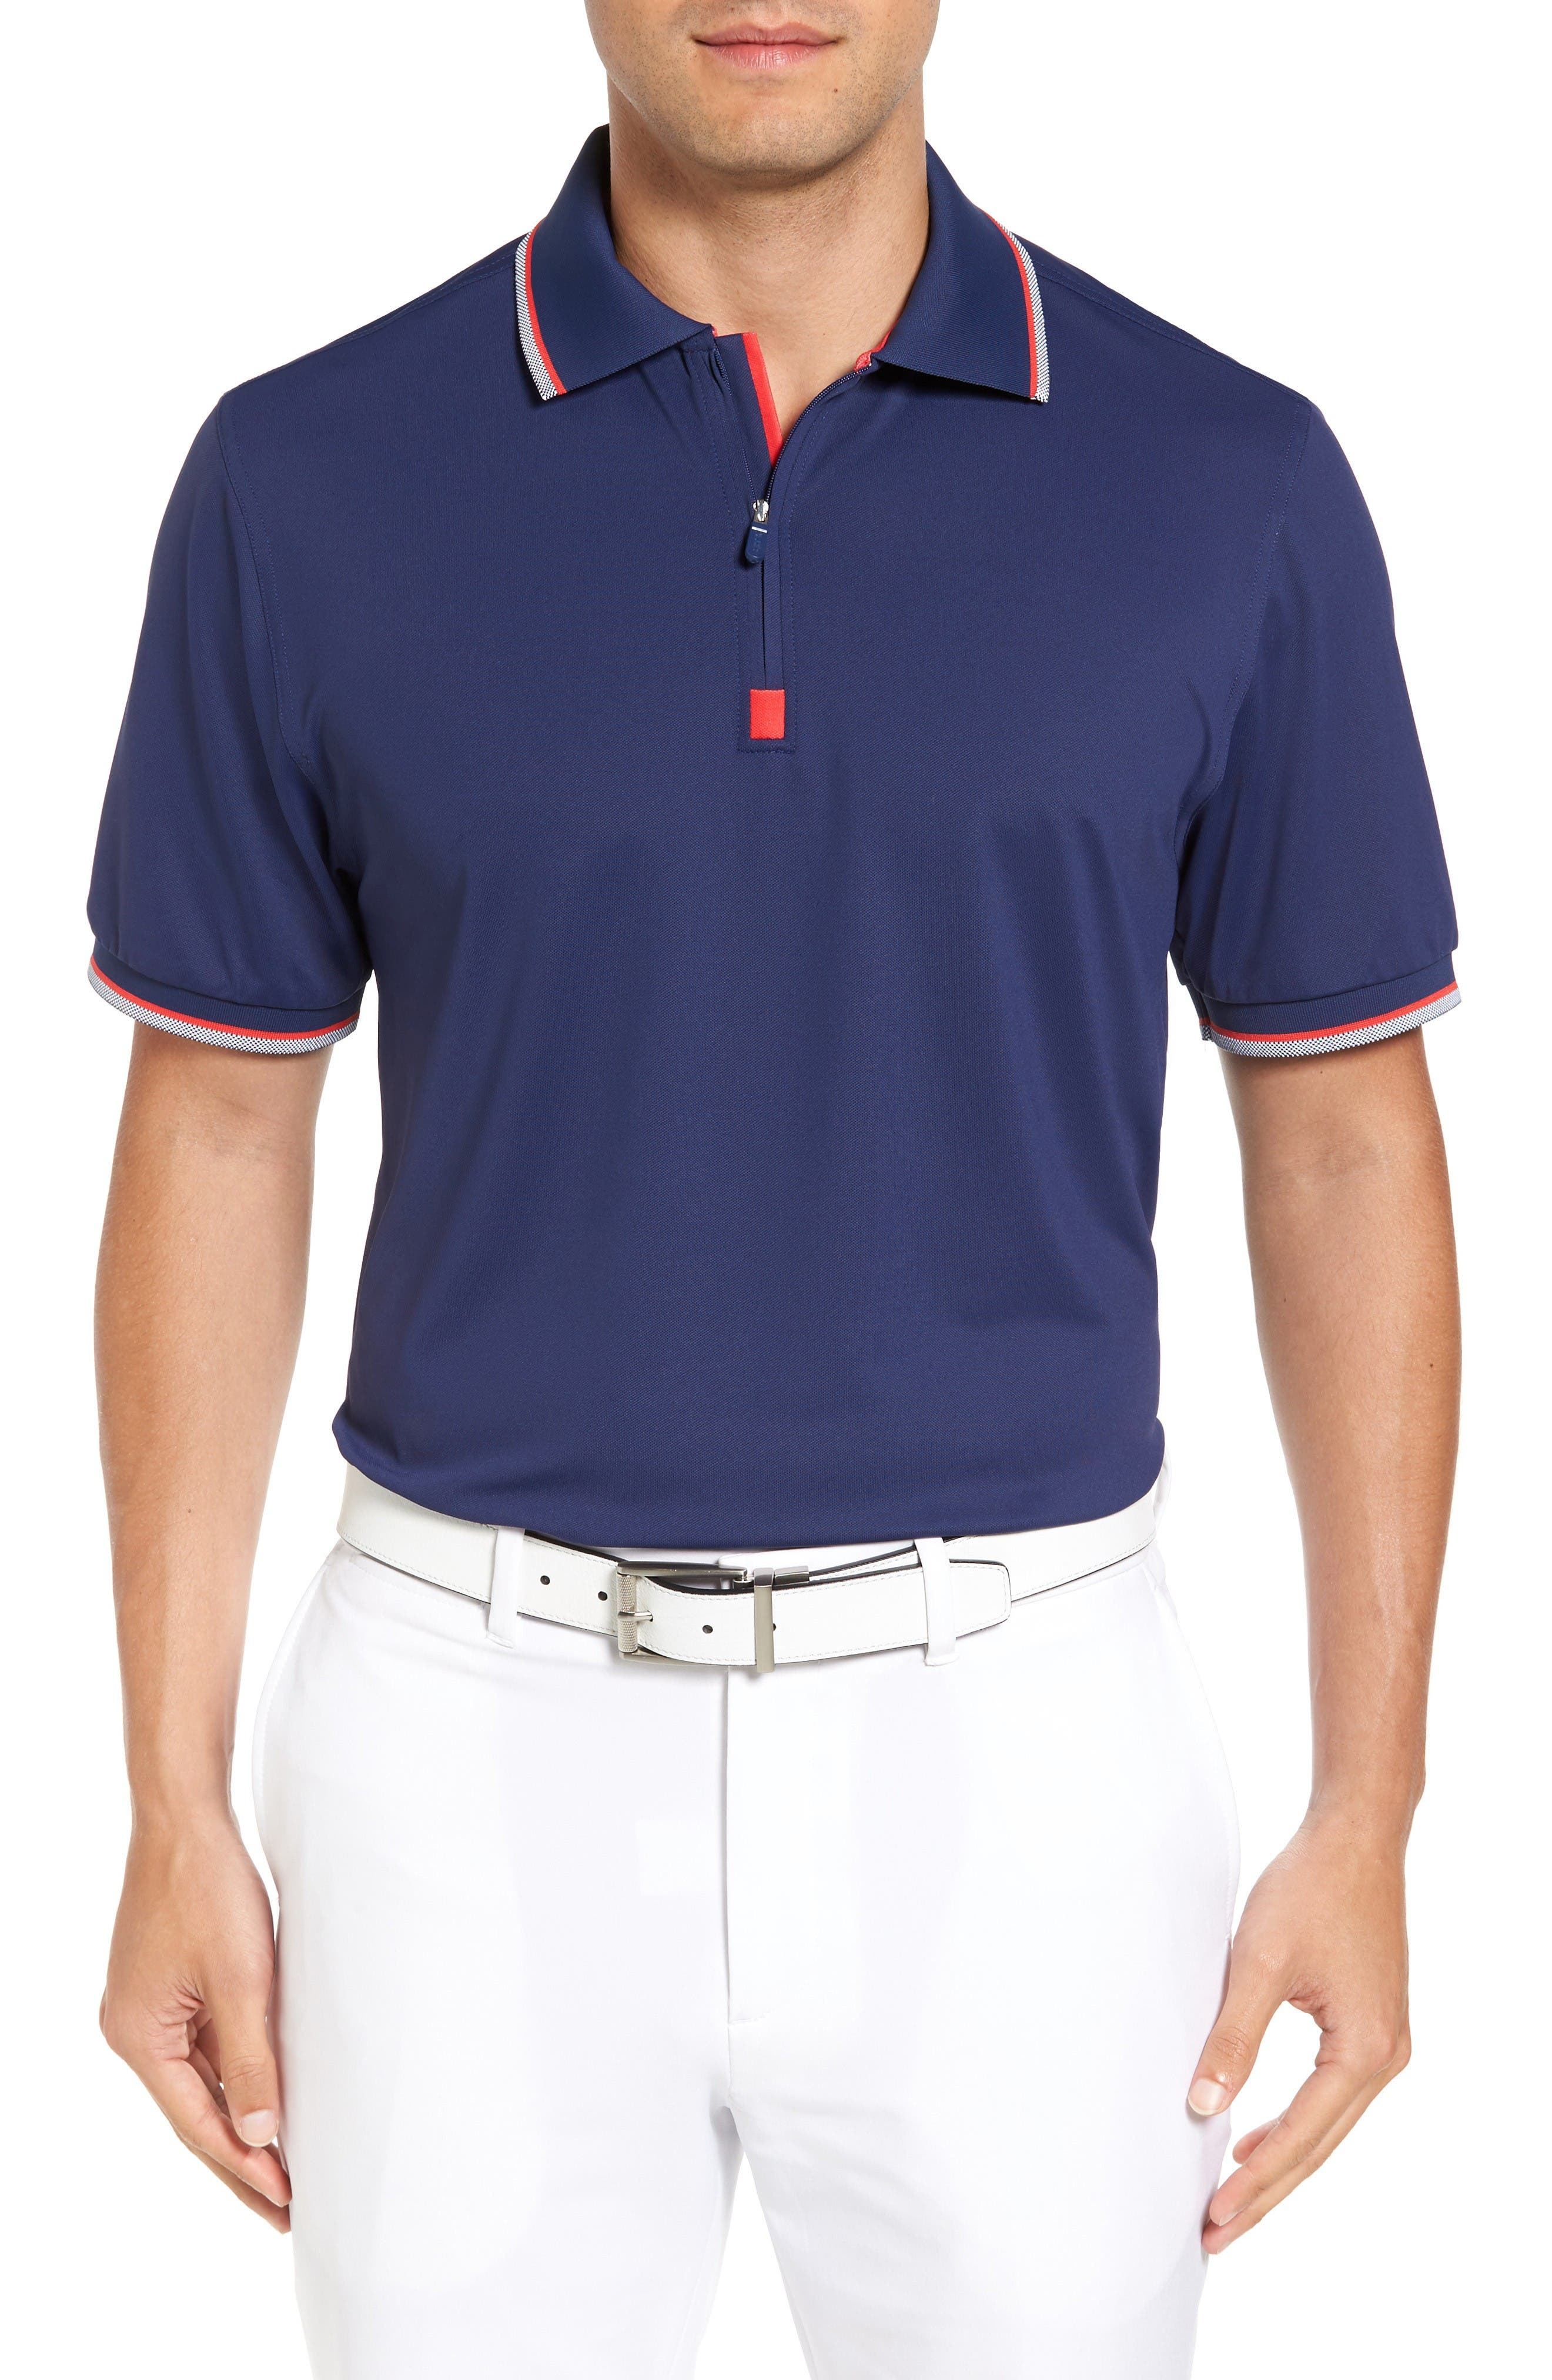 BOBBY JONES XH20 Solid Stretch Golf Polo